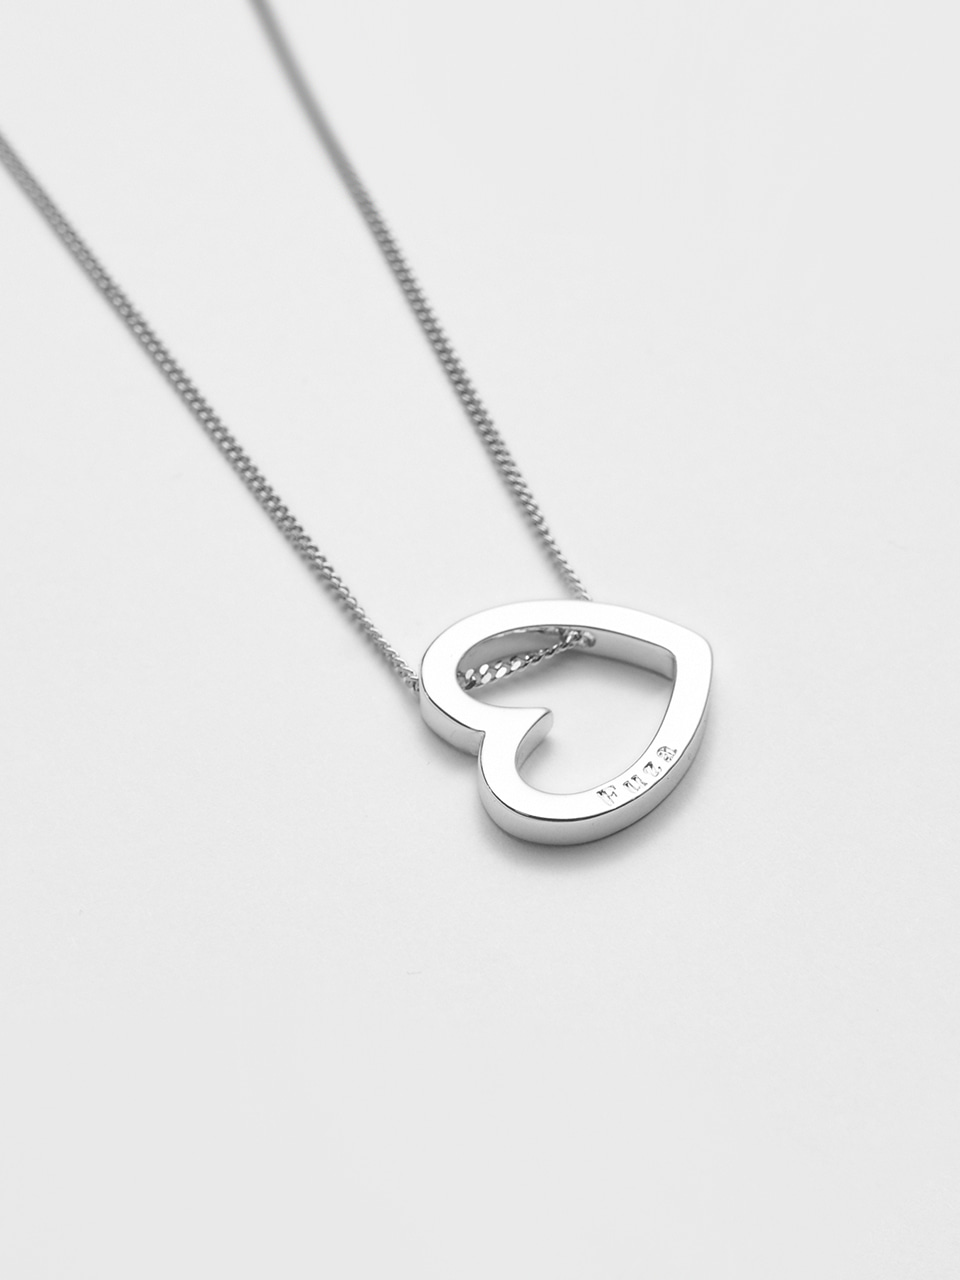 Heart Necklace Silver 하트 펜던트 실버 목걸이